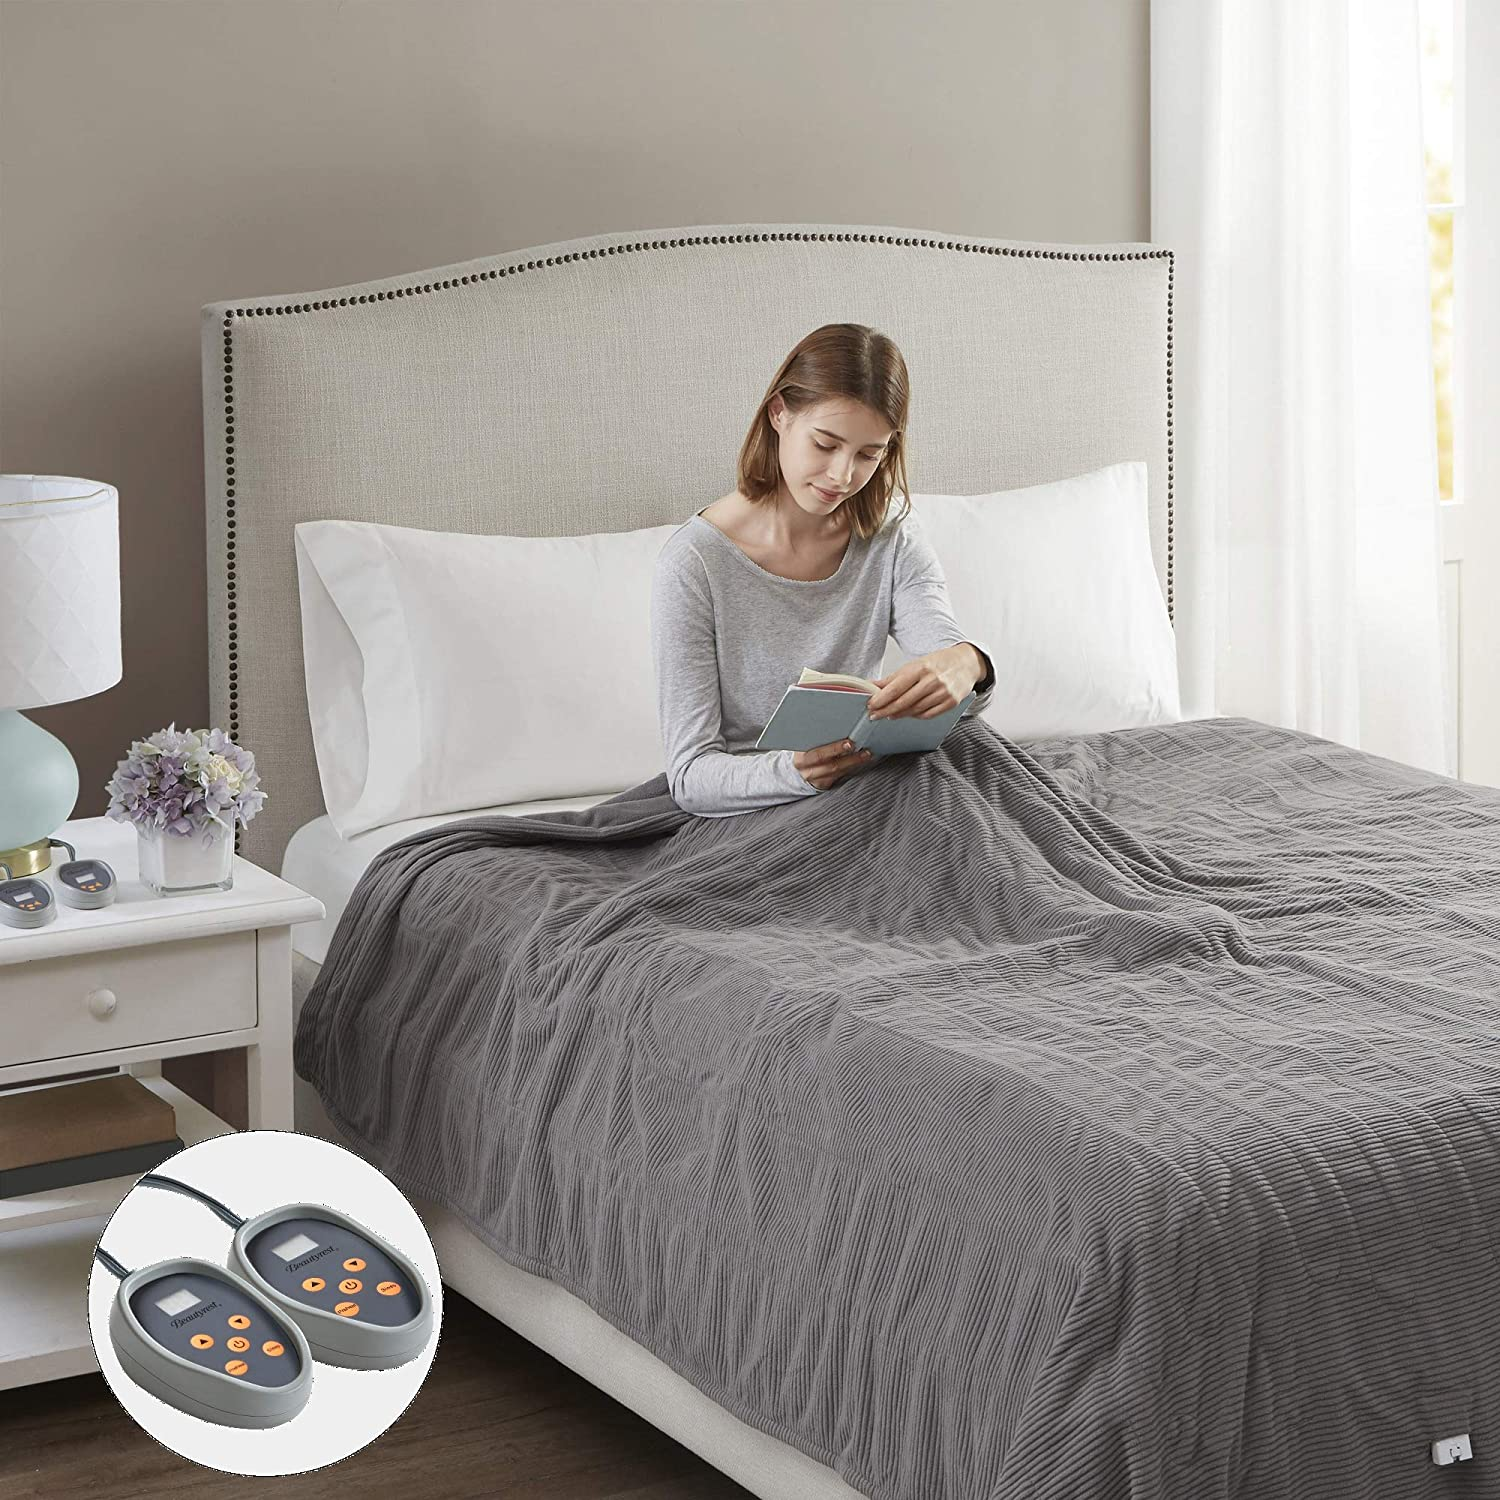 Beautyrest Electric Cheap mail order specialty store Ribbed MicroFleece Luxury Blanket-Secur Cash special price Soft